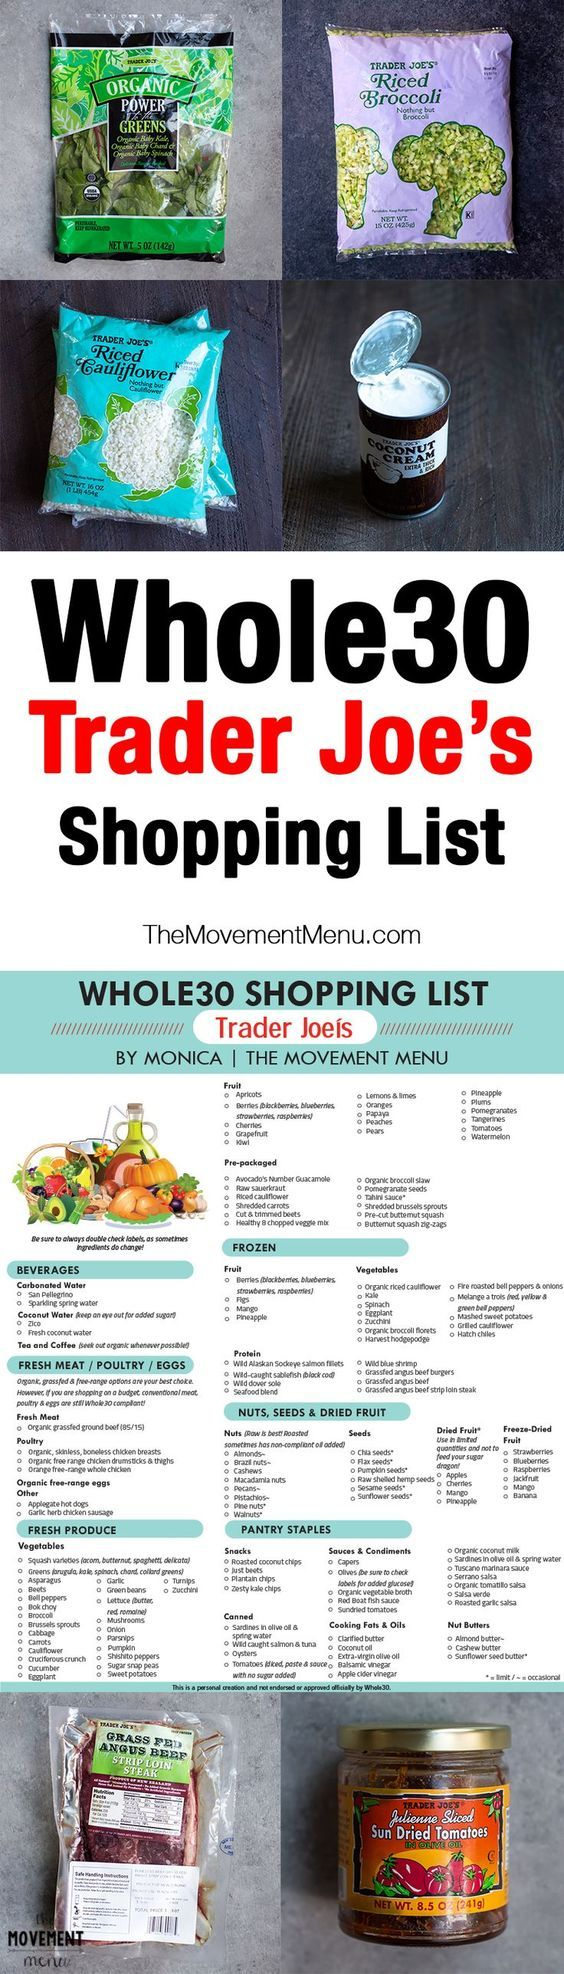 Whole30 Trader Joe's, Whole30 Trader Joe's Shopping List, Trader Joe's Shopping Guide. A shopping list you can print out or save for later. Whole30 recipes are included, too! | The Movement Menu {More on Trading|Successful trading|Trade erfolgreich|FOREX-Trading|Forex-Analysis} on